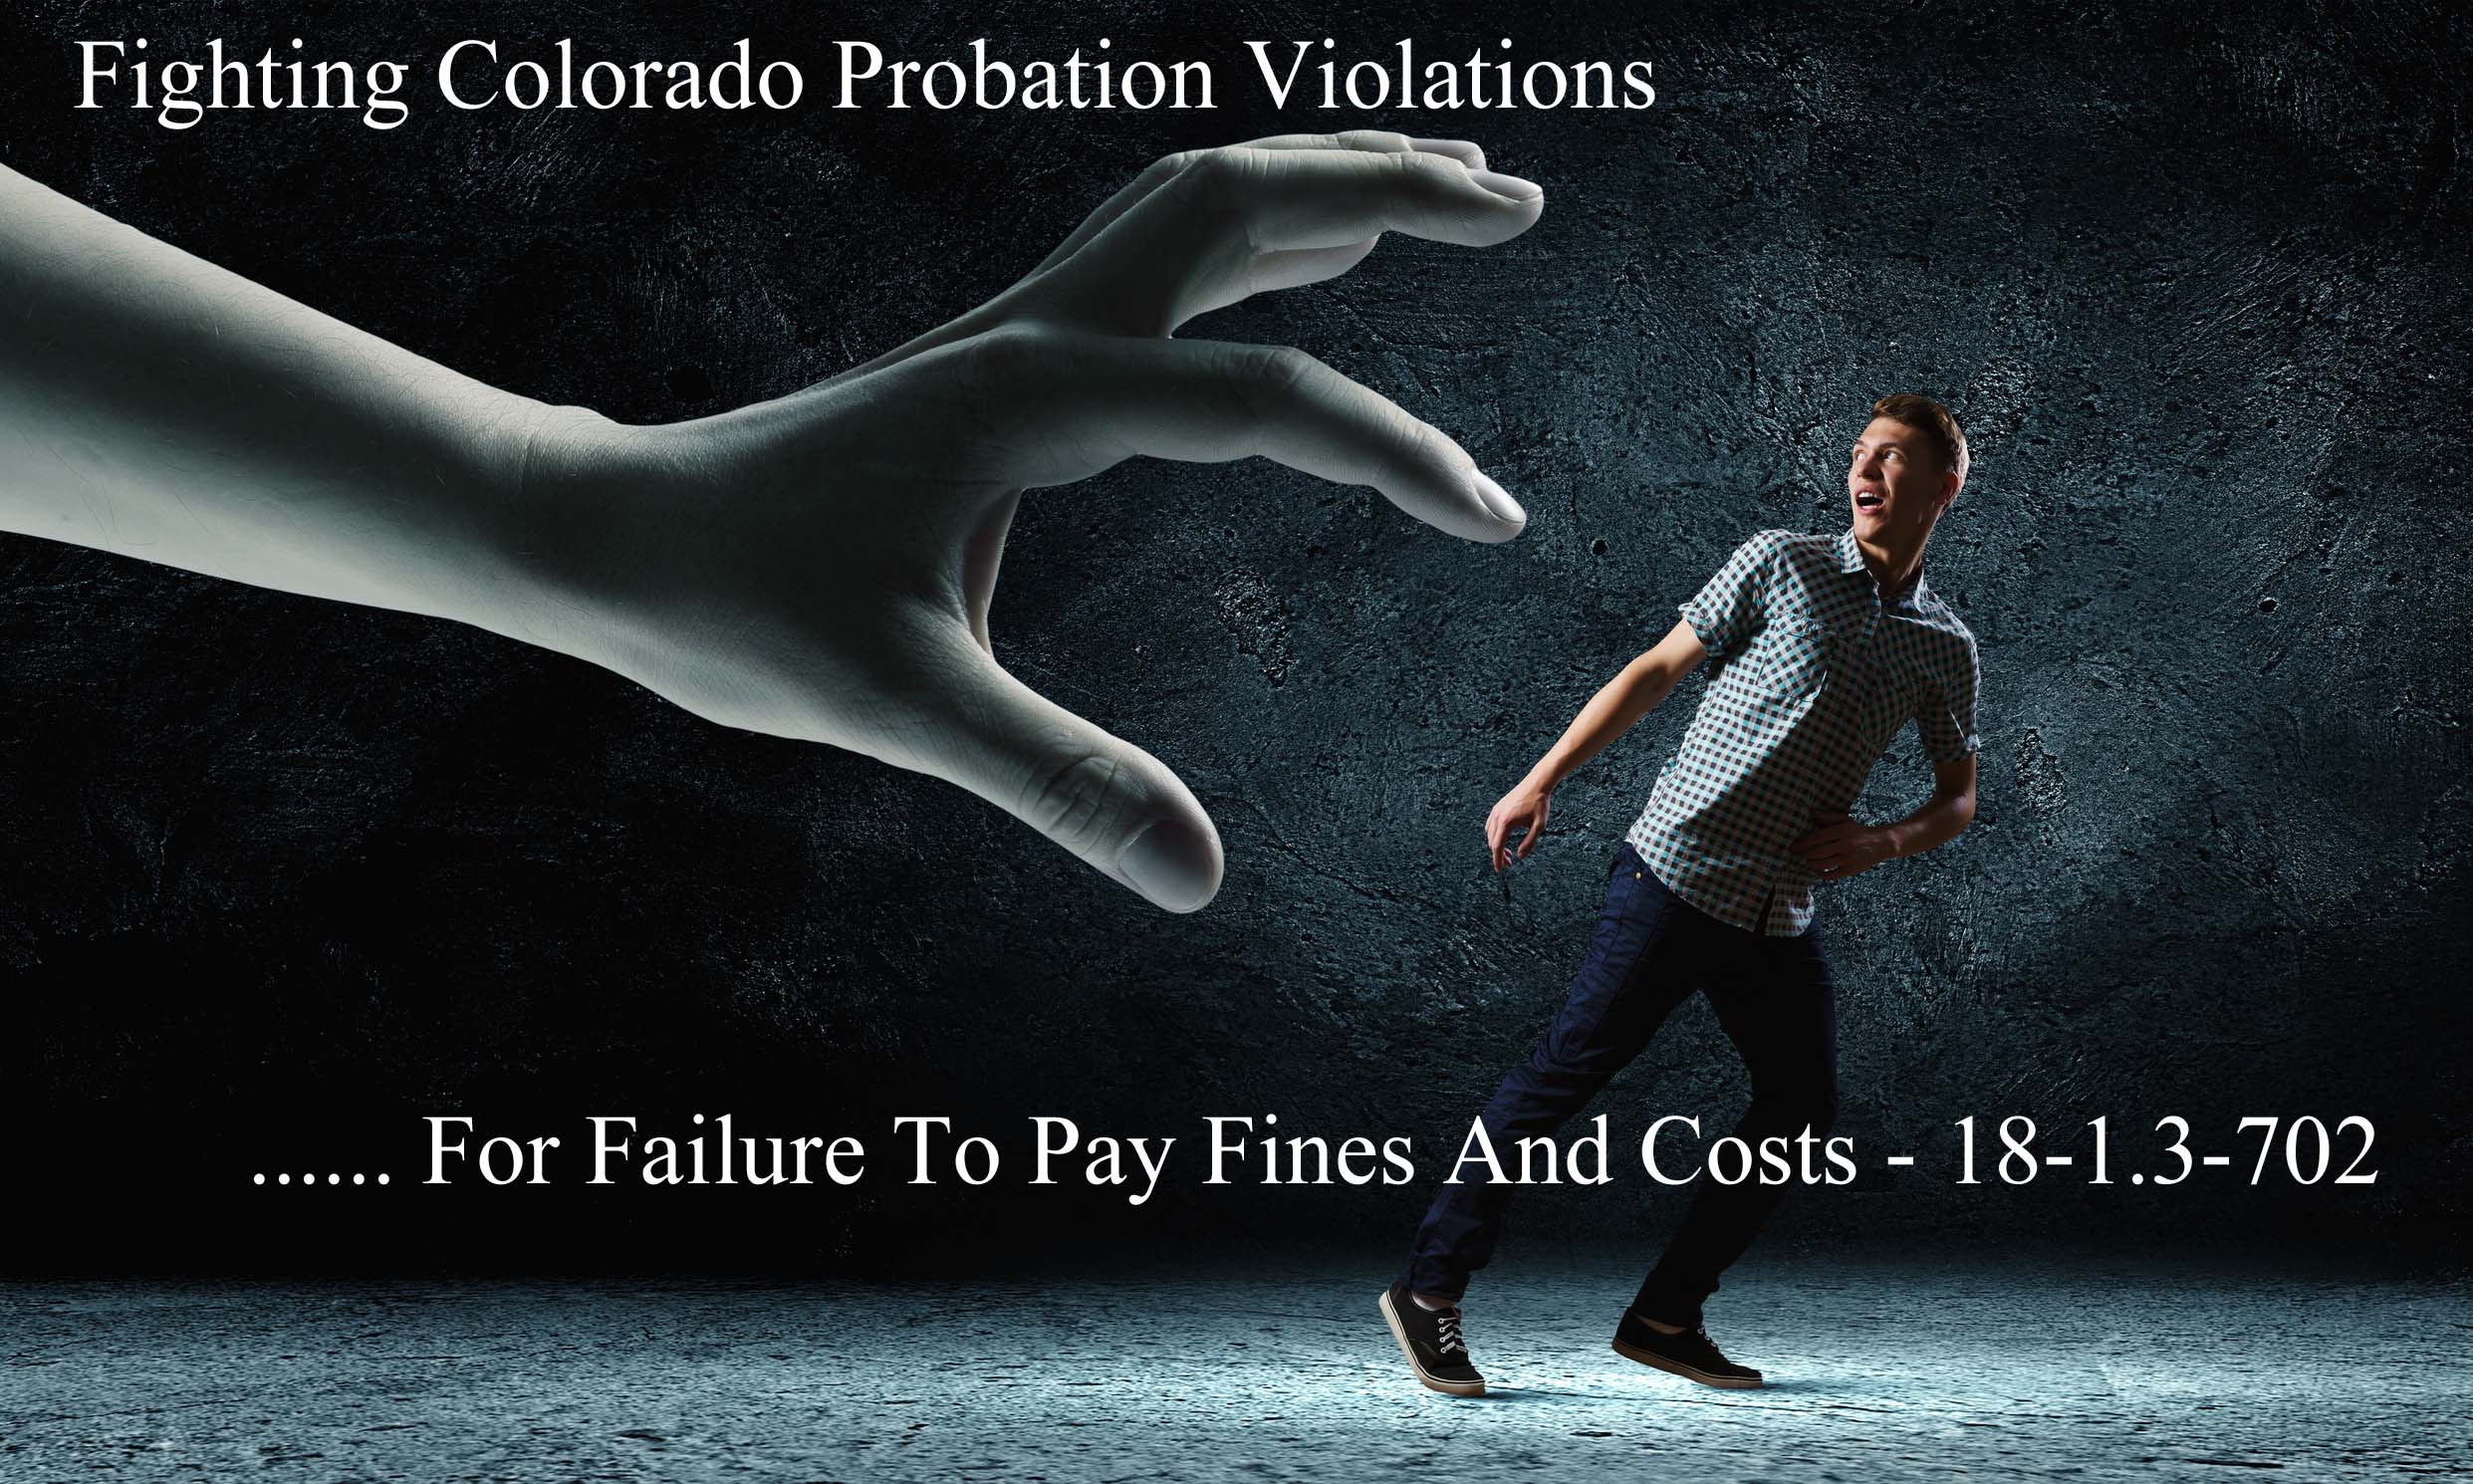 Fighting Colorado Probation Violations For Failure To Pay Fines And Costs - 18-1.3-702